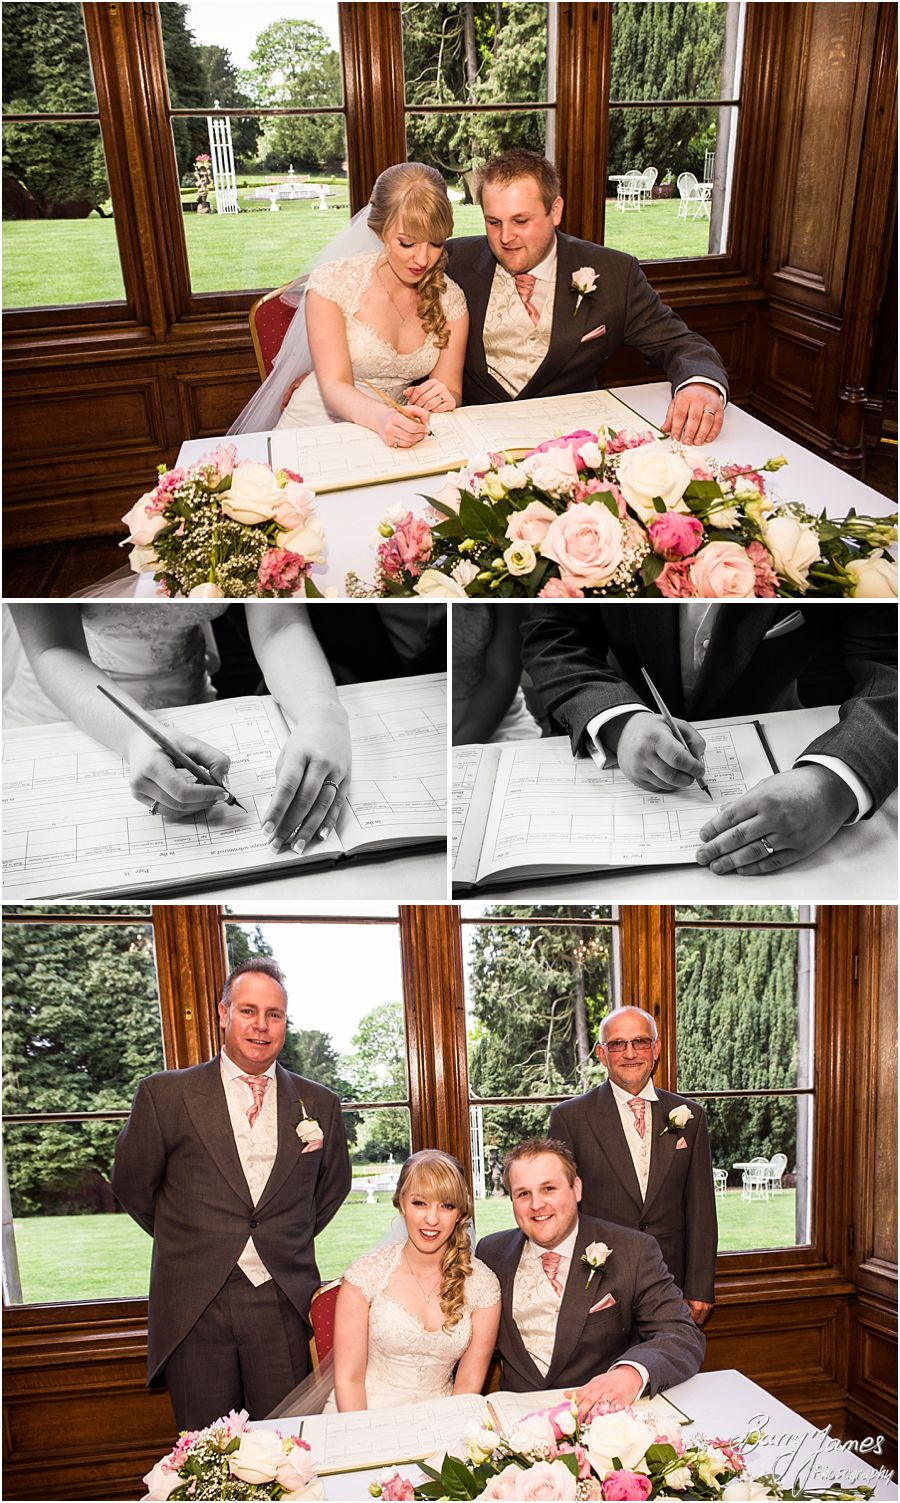 Creative emotional photos of the wedding ceremony at Hawkesyard Estate in Rugeley by Rugeley Award Winning Wedding Photographer Barry James